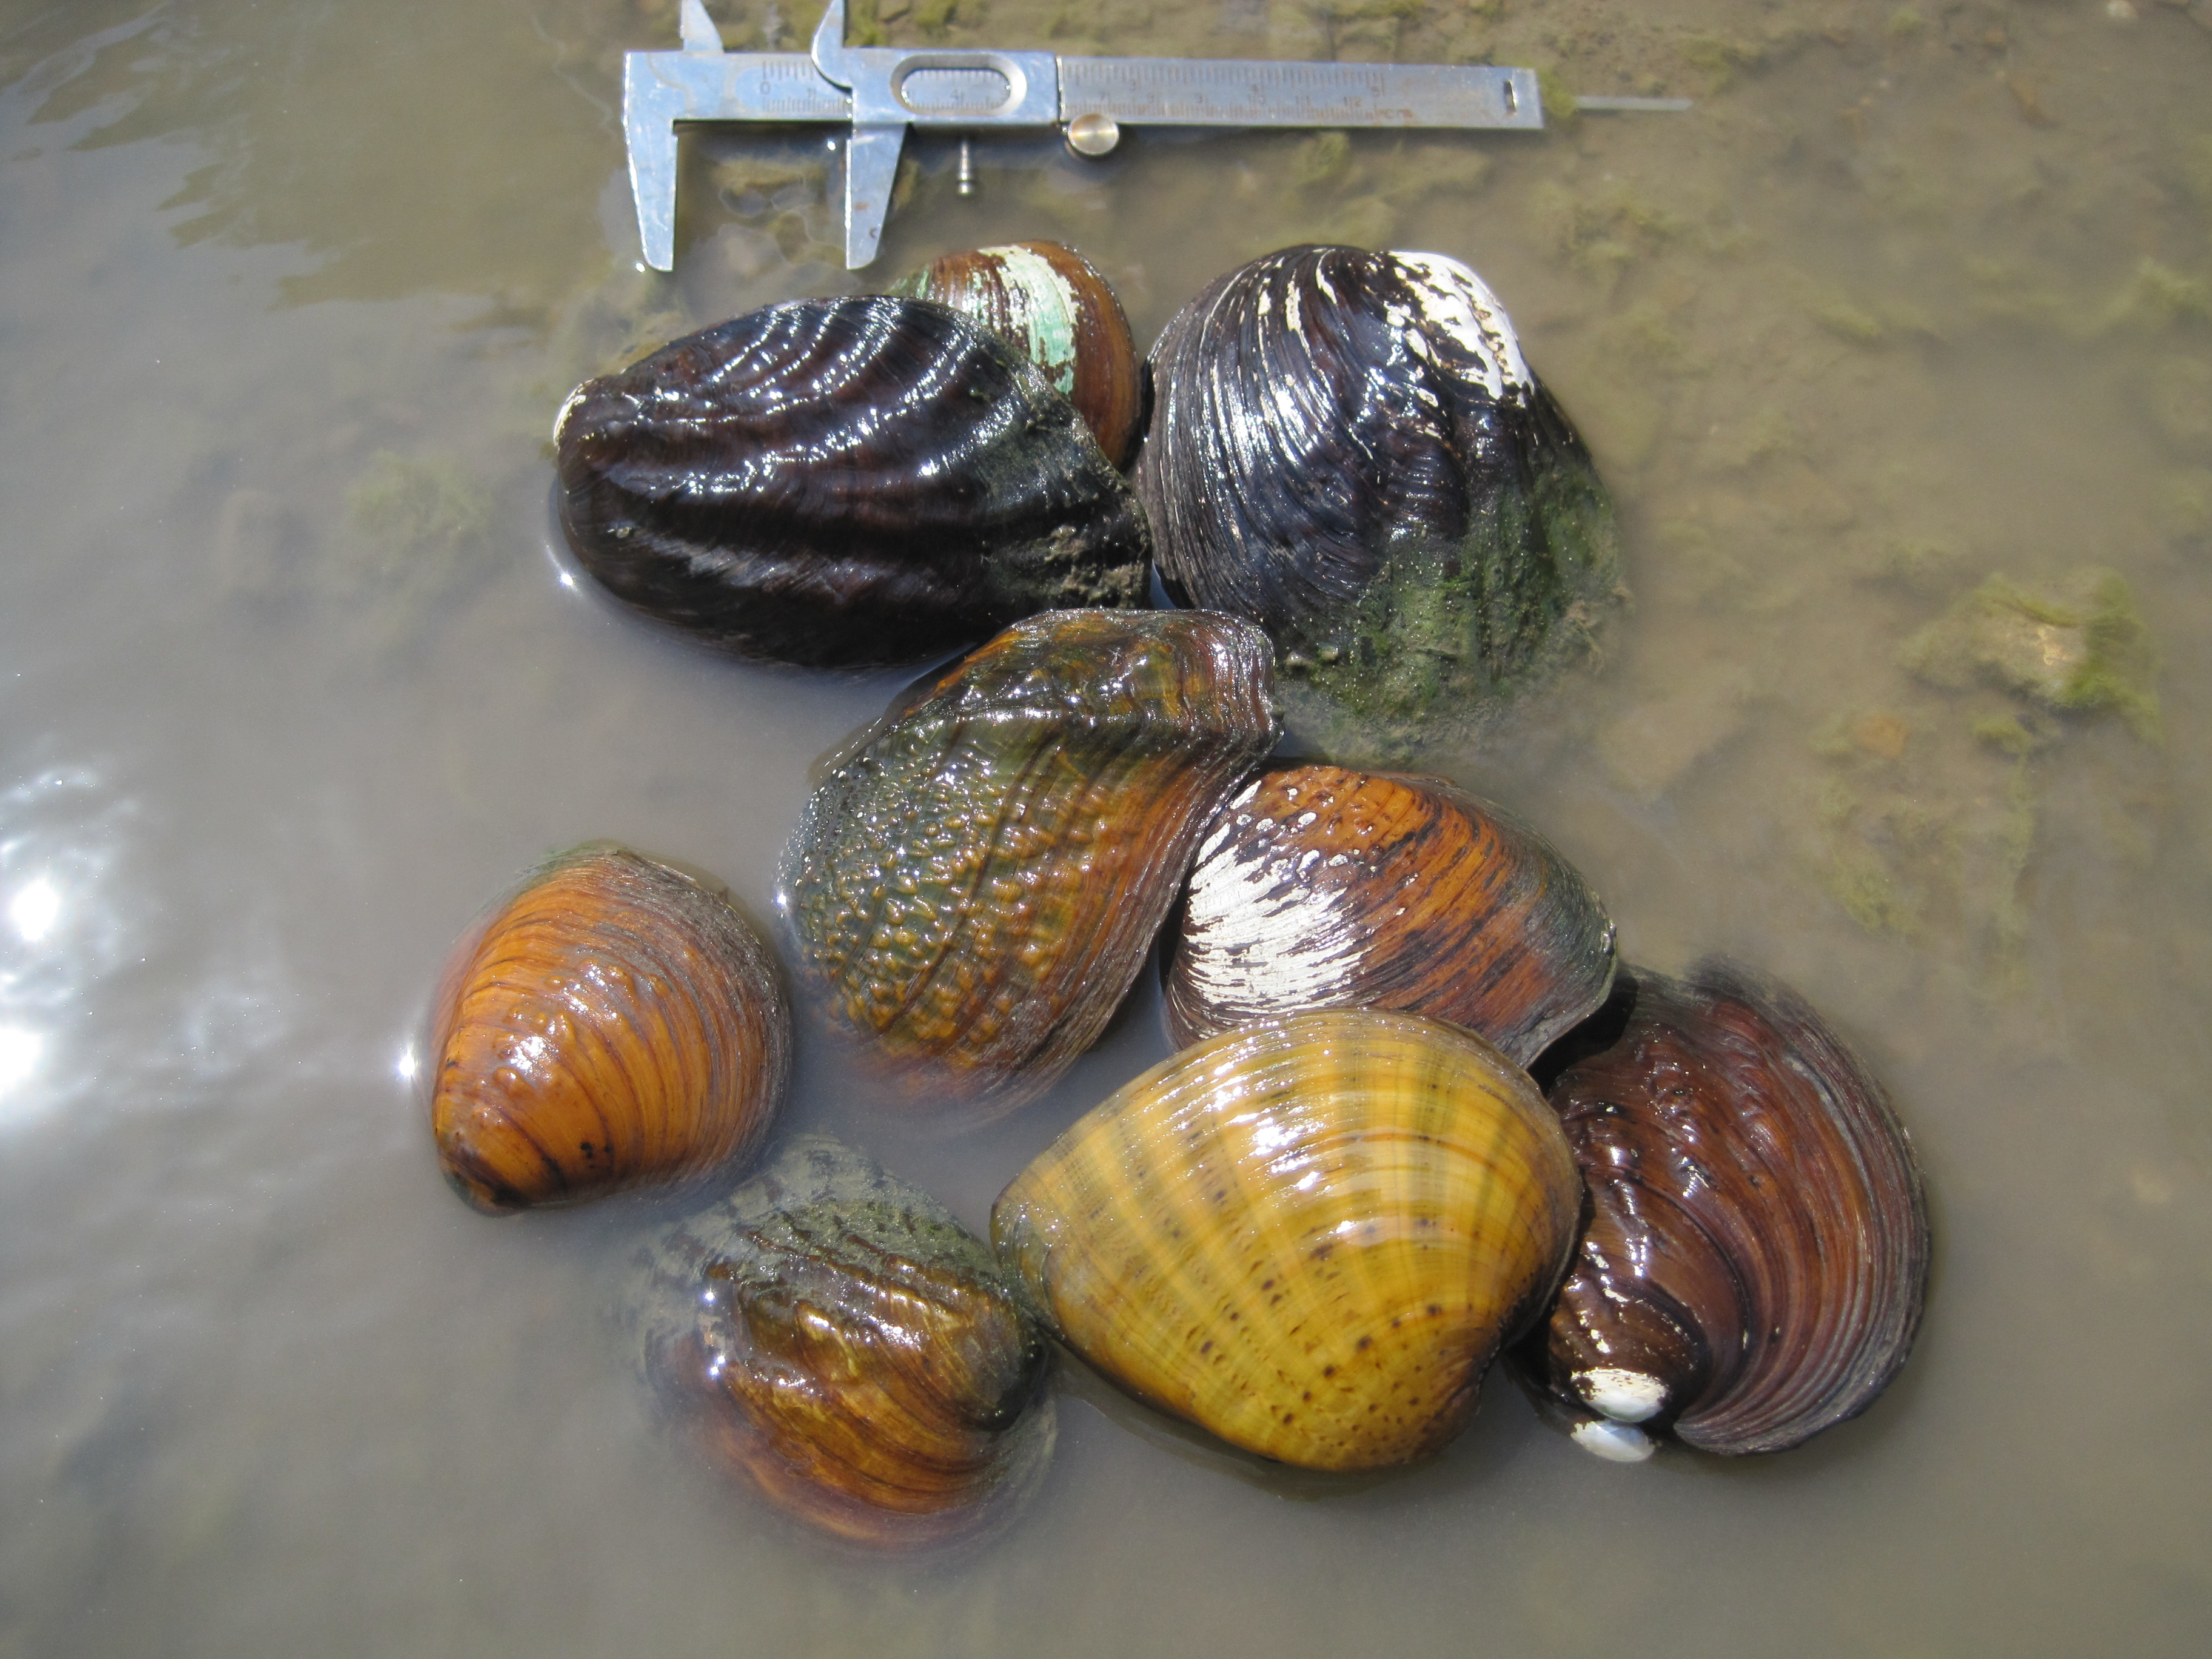 State-funded studies help federal agency remove two mussels from endangered species candidate list